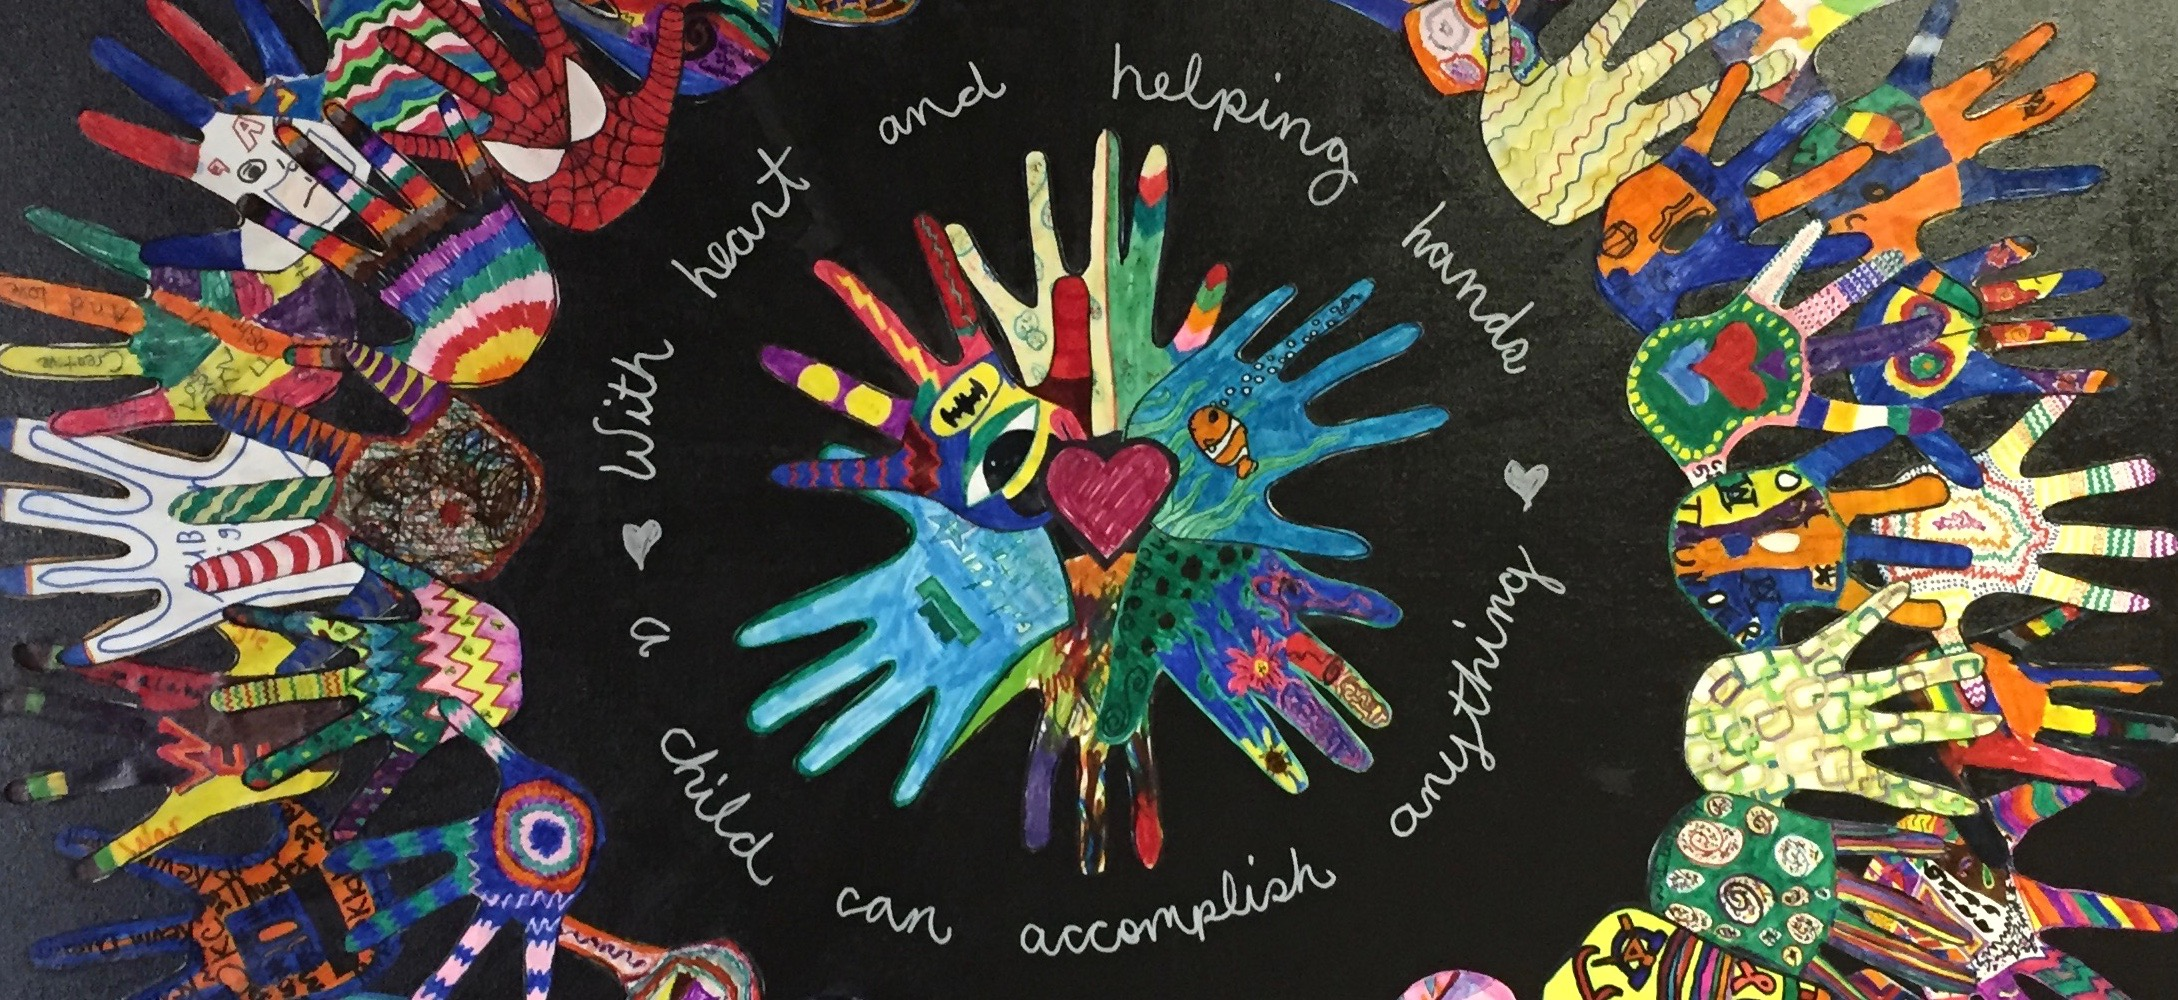 With heart and helping hands a child can accomplish anything art created by students